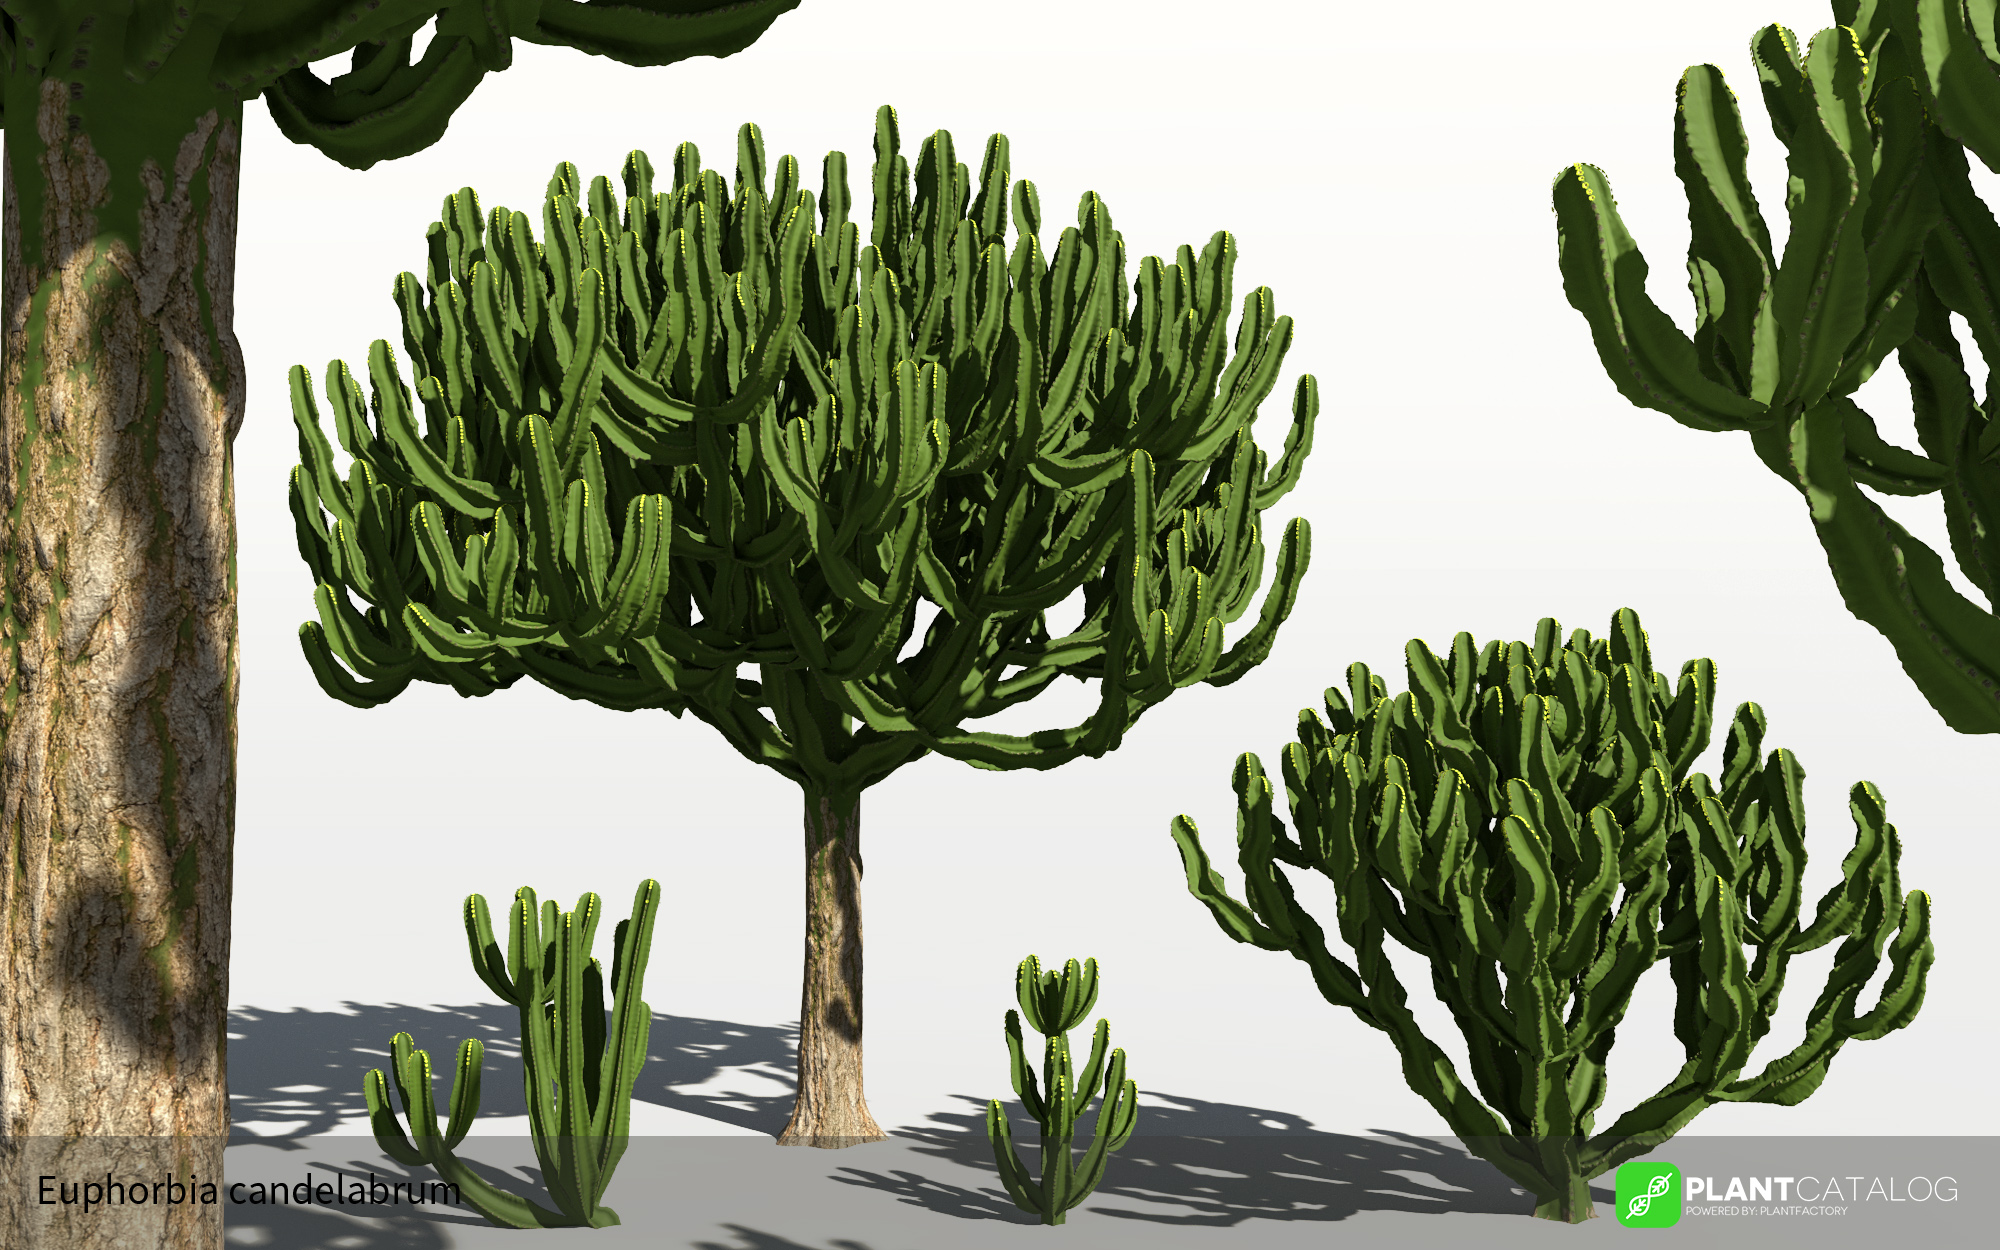 3D model of the Candelabra tree - Euphorbia candelabrum - from the PlantCatalog, rendered in VUE